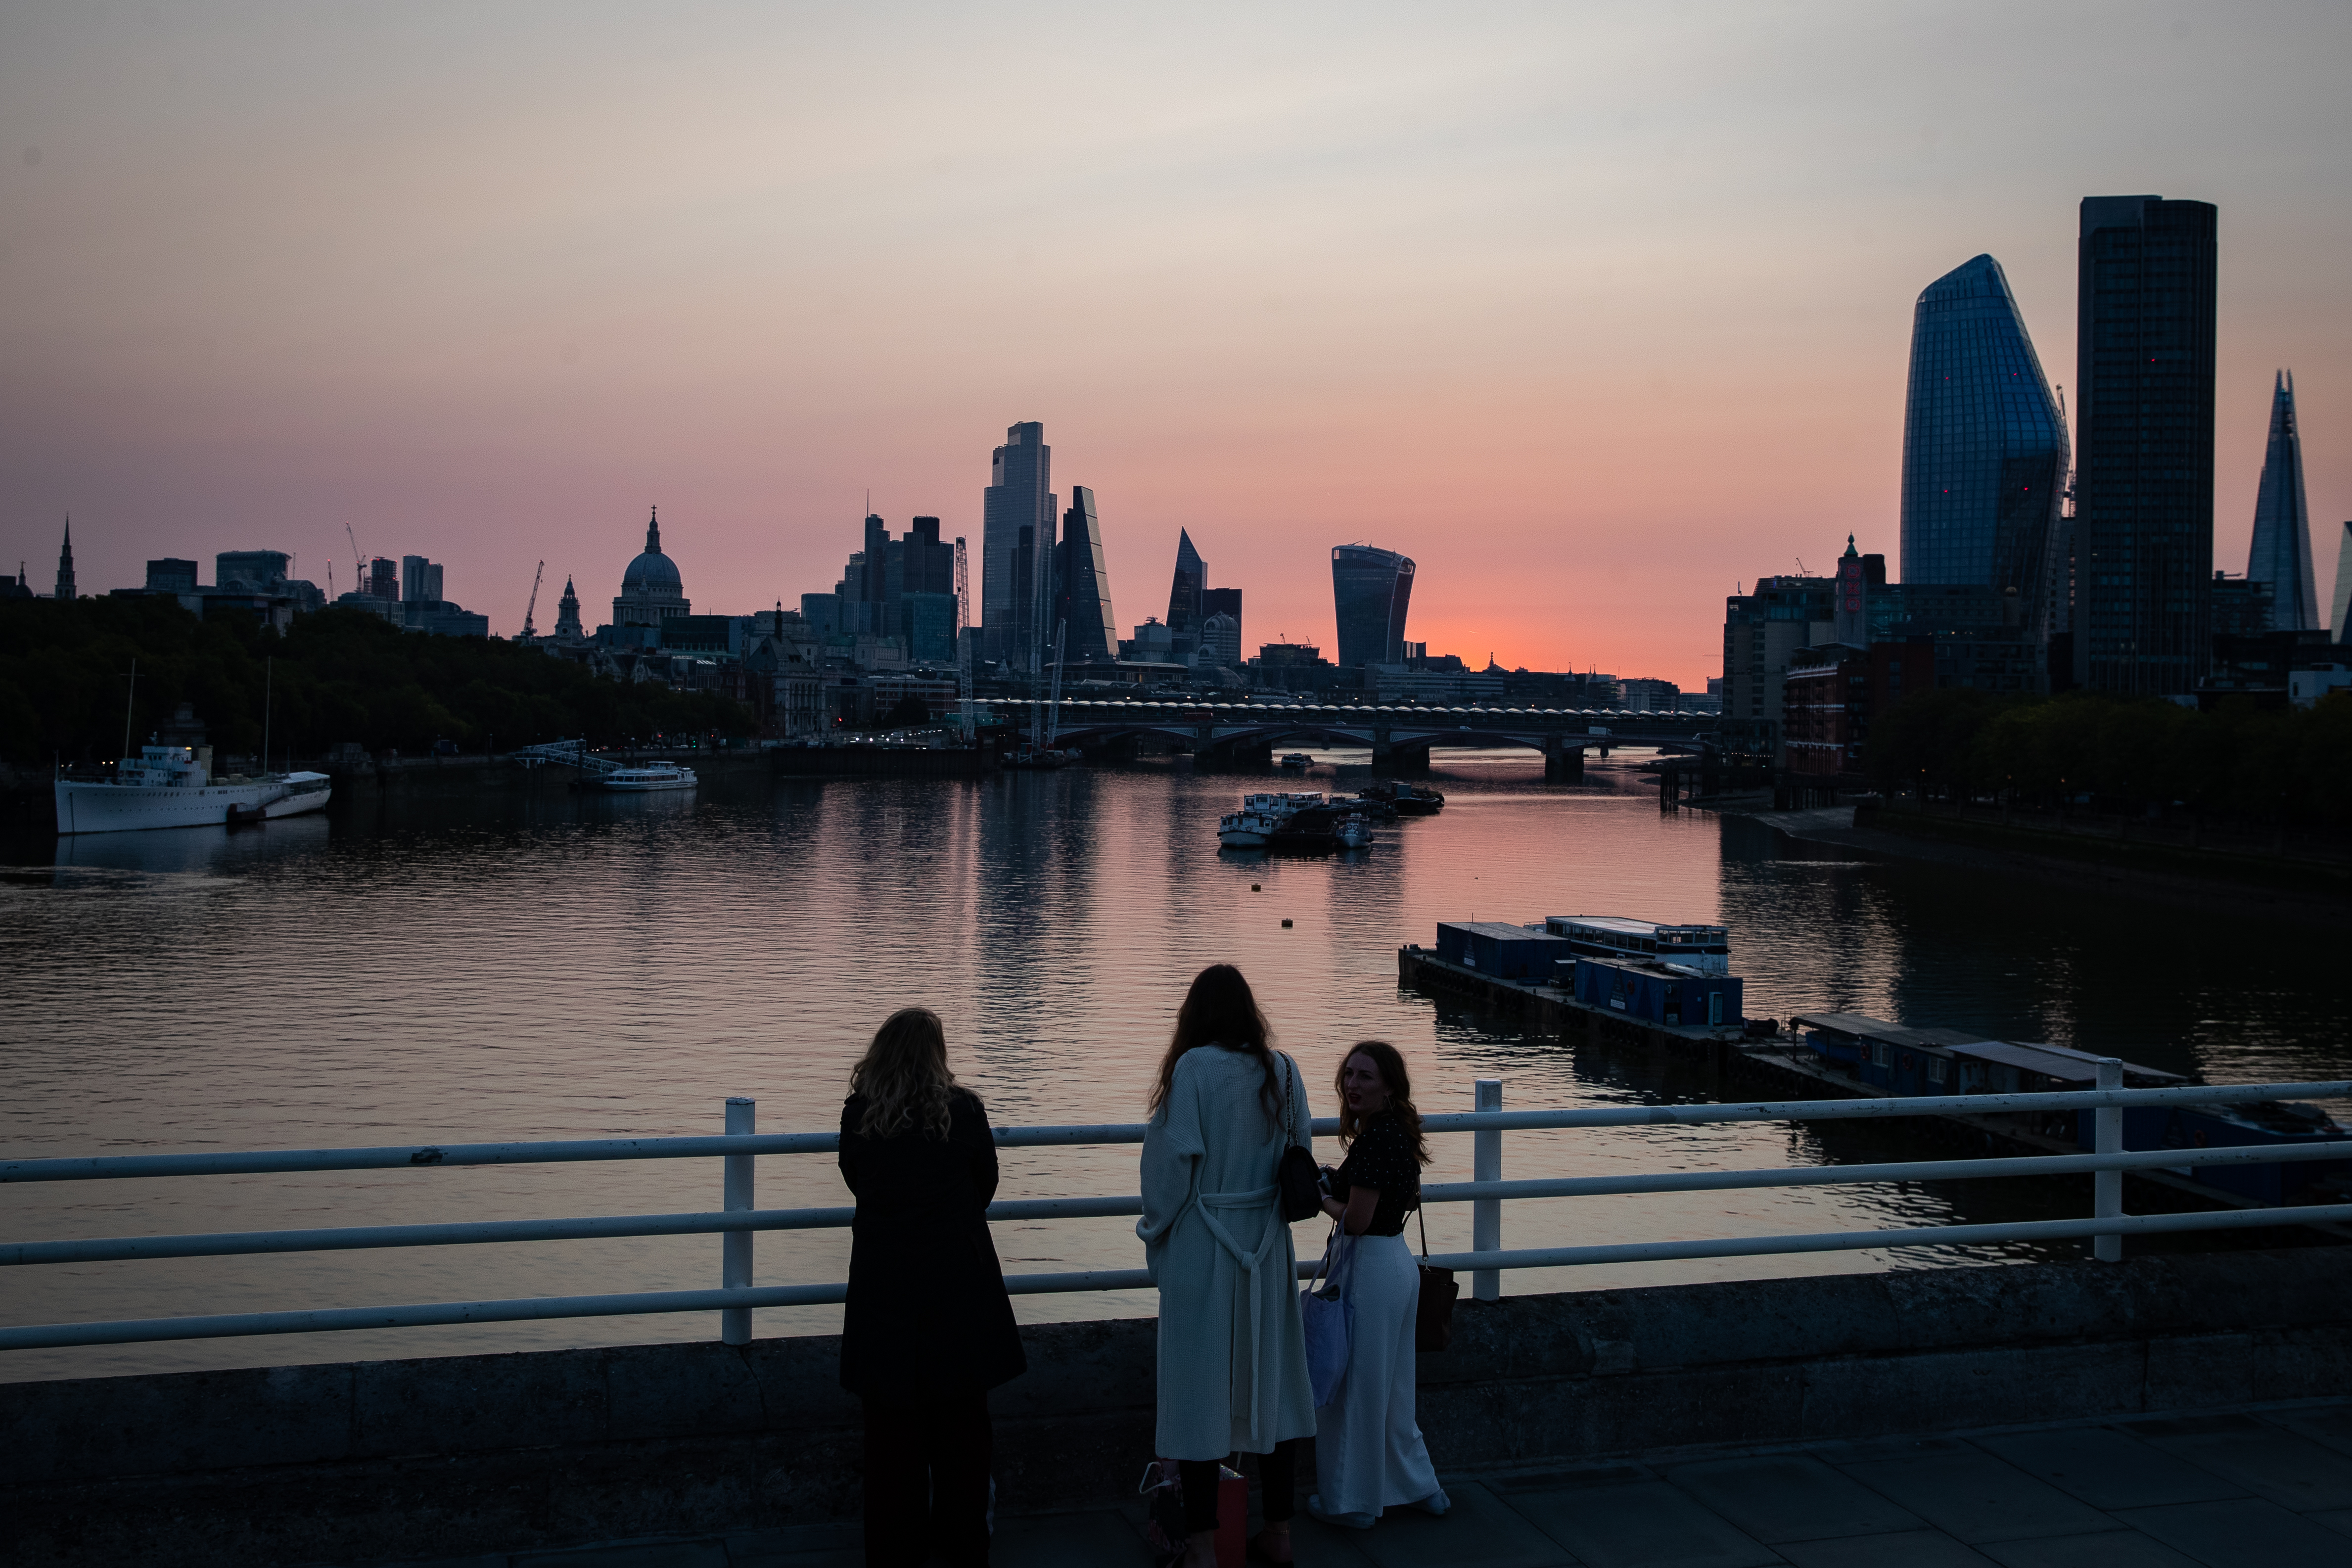 The sun rises behind the skyscrapers of the City of London financial district, at the start of a week in which the UK is expected to bask in temperatures of more than 30C. (Photo by Aaron Chown/PA Images via Getty Images)